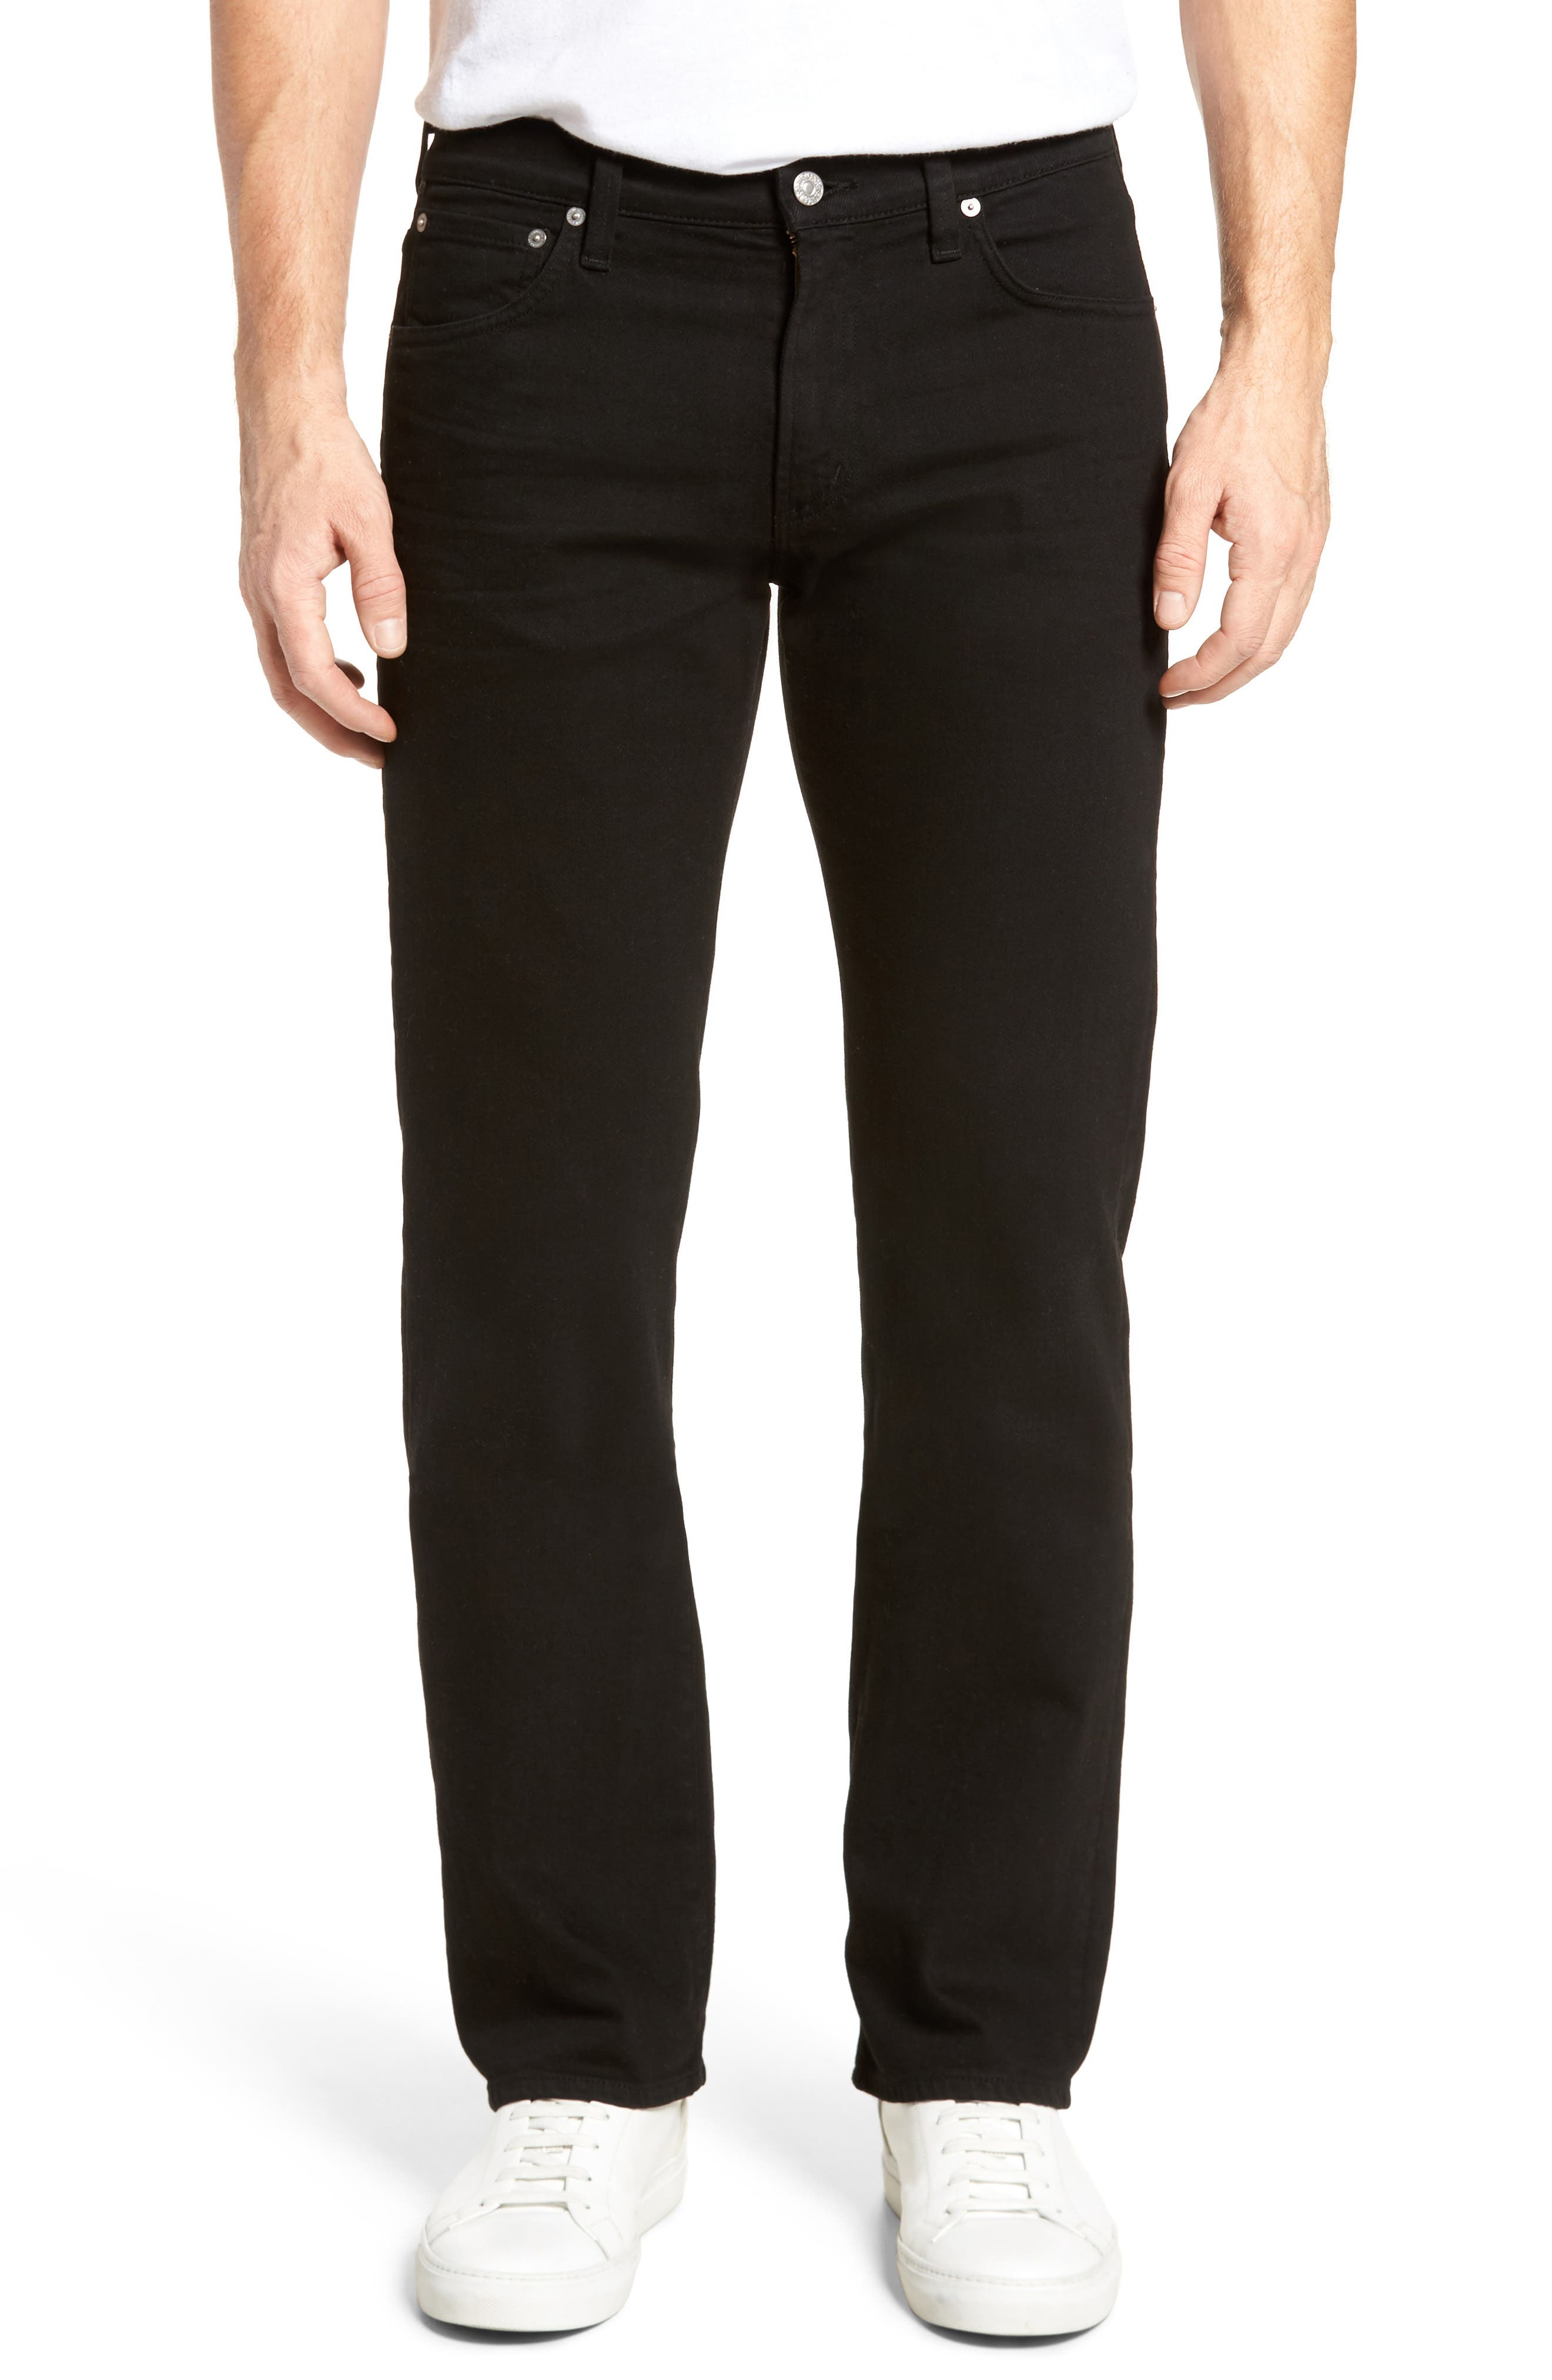 Sid Straight Fit Jeans,                             Main thumbnail 1, color,                             004